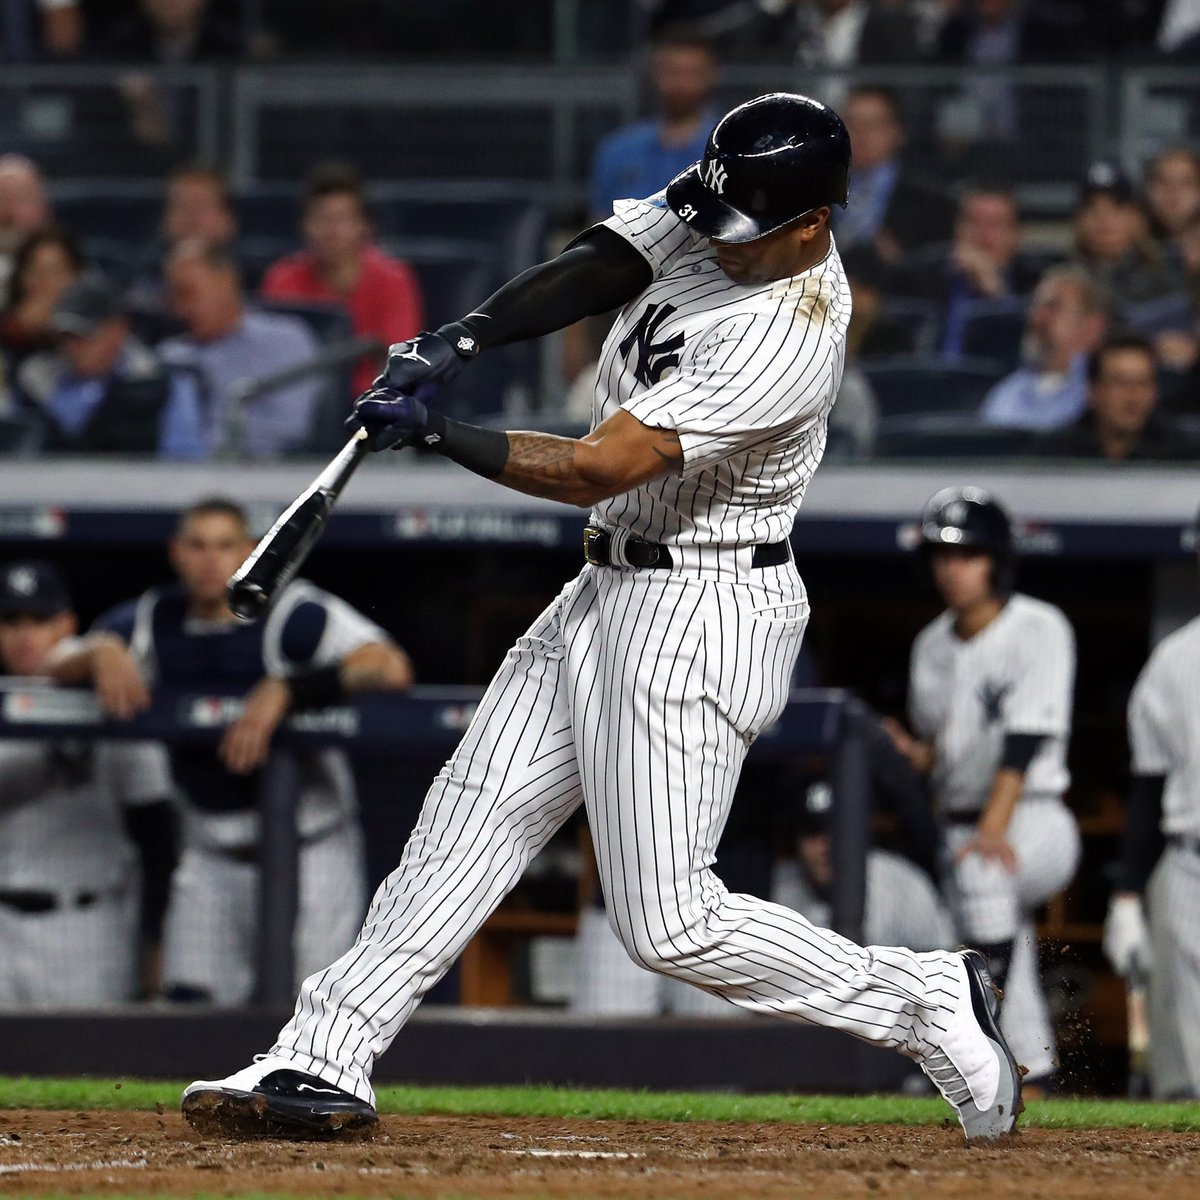 quality design 2bc9a 896c6 solewatch: @aaronhicks31 wearing air jordan 13 cleats in the ...